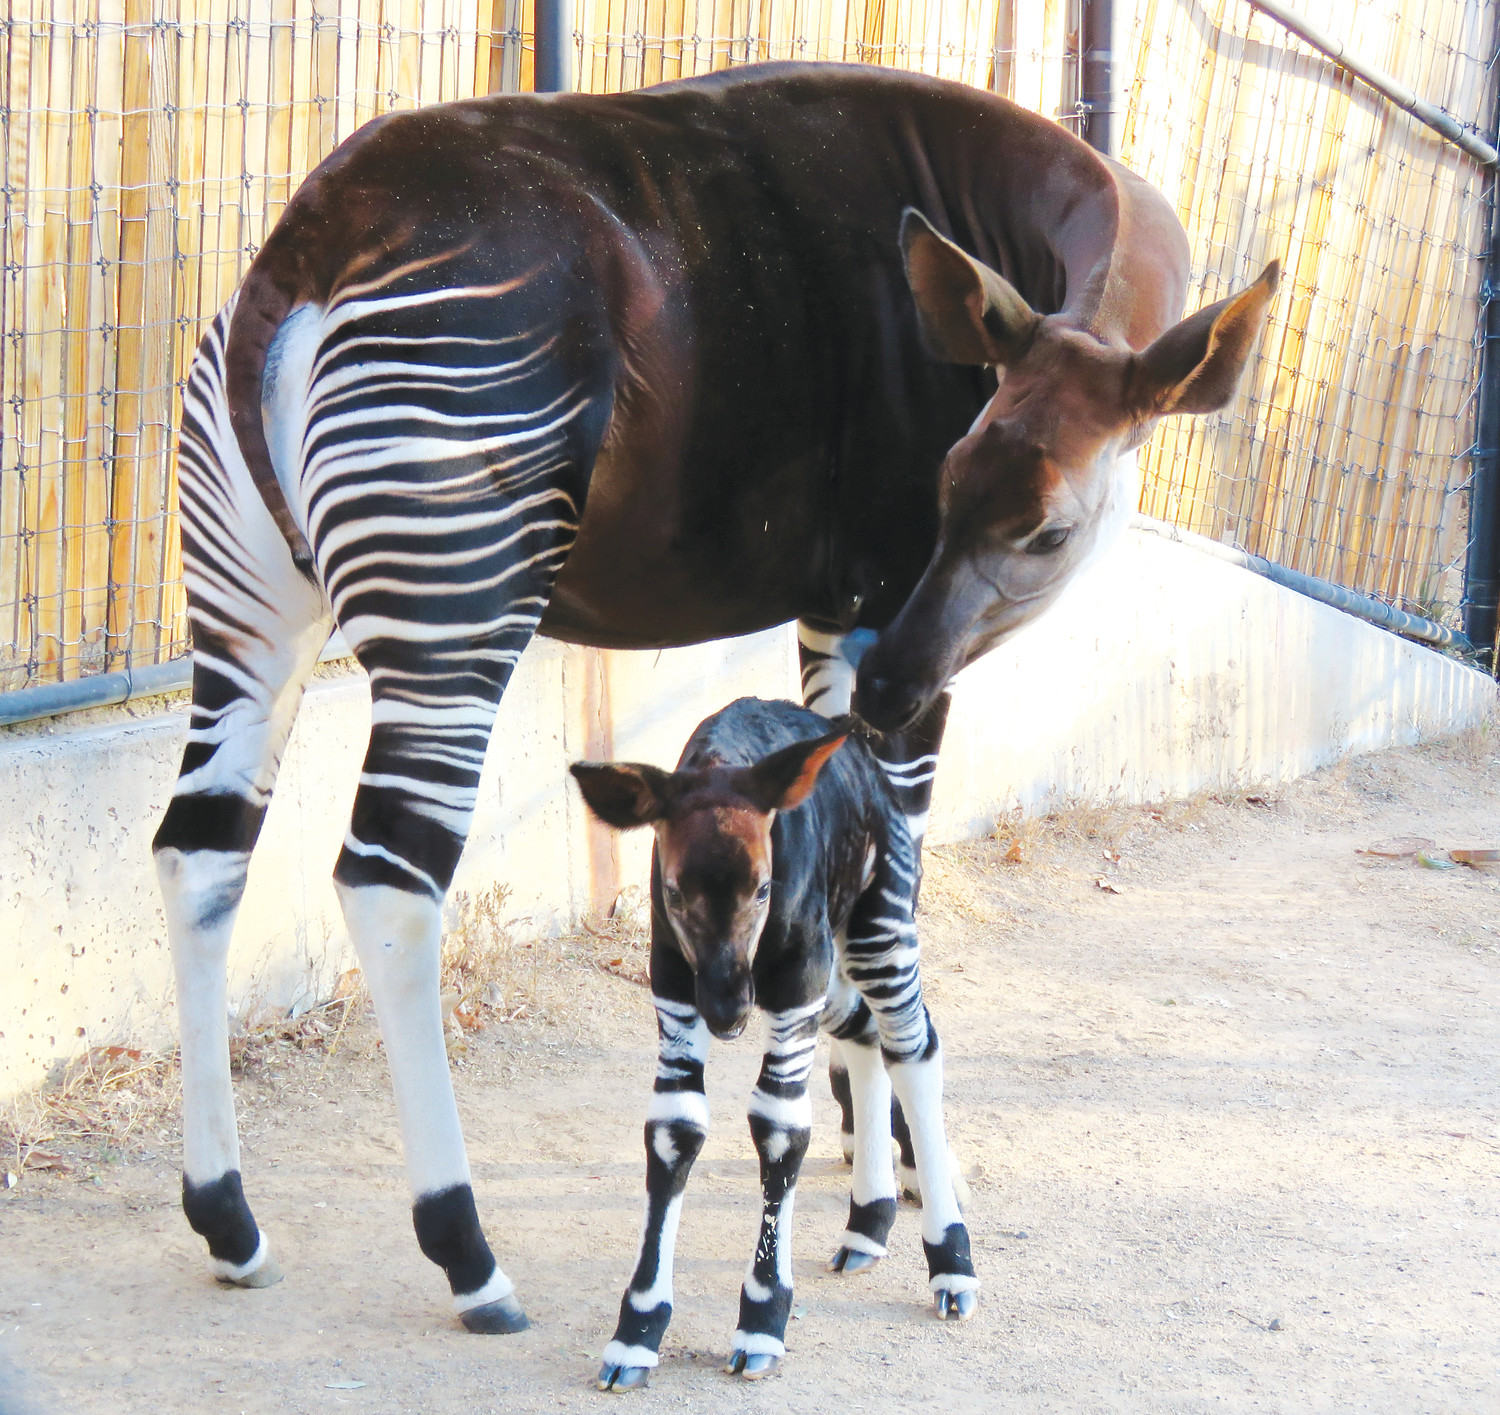 Denver Zoo staff work on Forest, the Denver Zoo's baby Okapi. Forest needed a plasma transfusion shortly after birth.